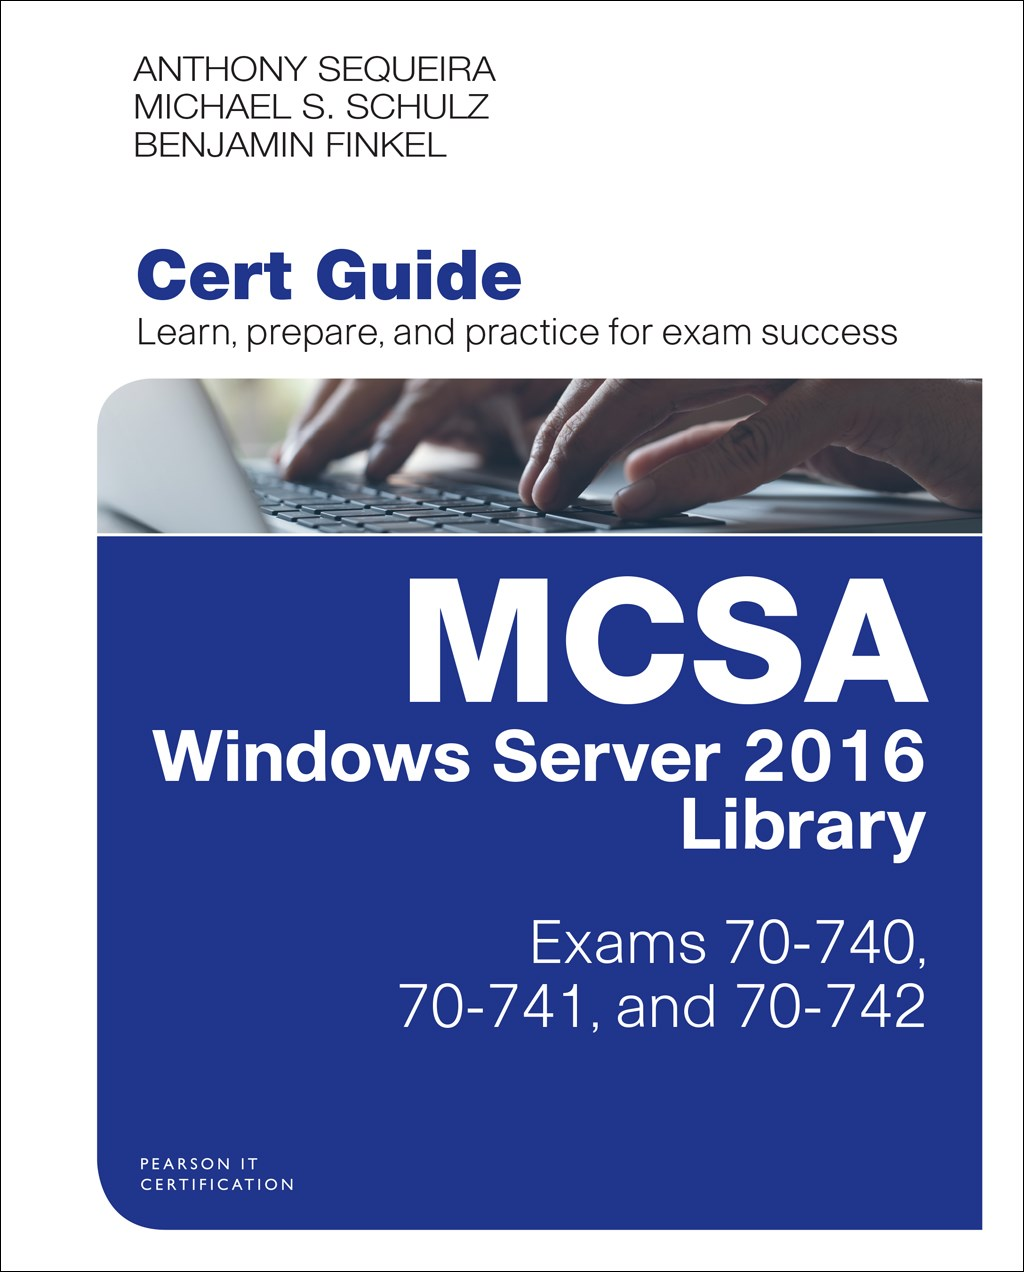 MCSA Windows Server 2016 Cert Guide Library (Exams 70-740, 70-741, and 70-742)